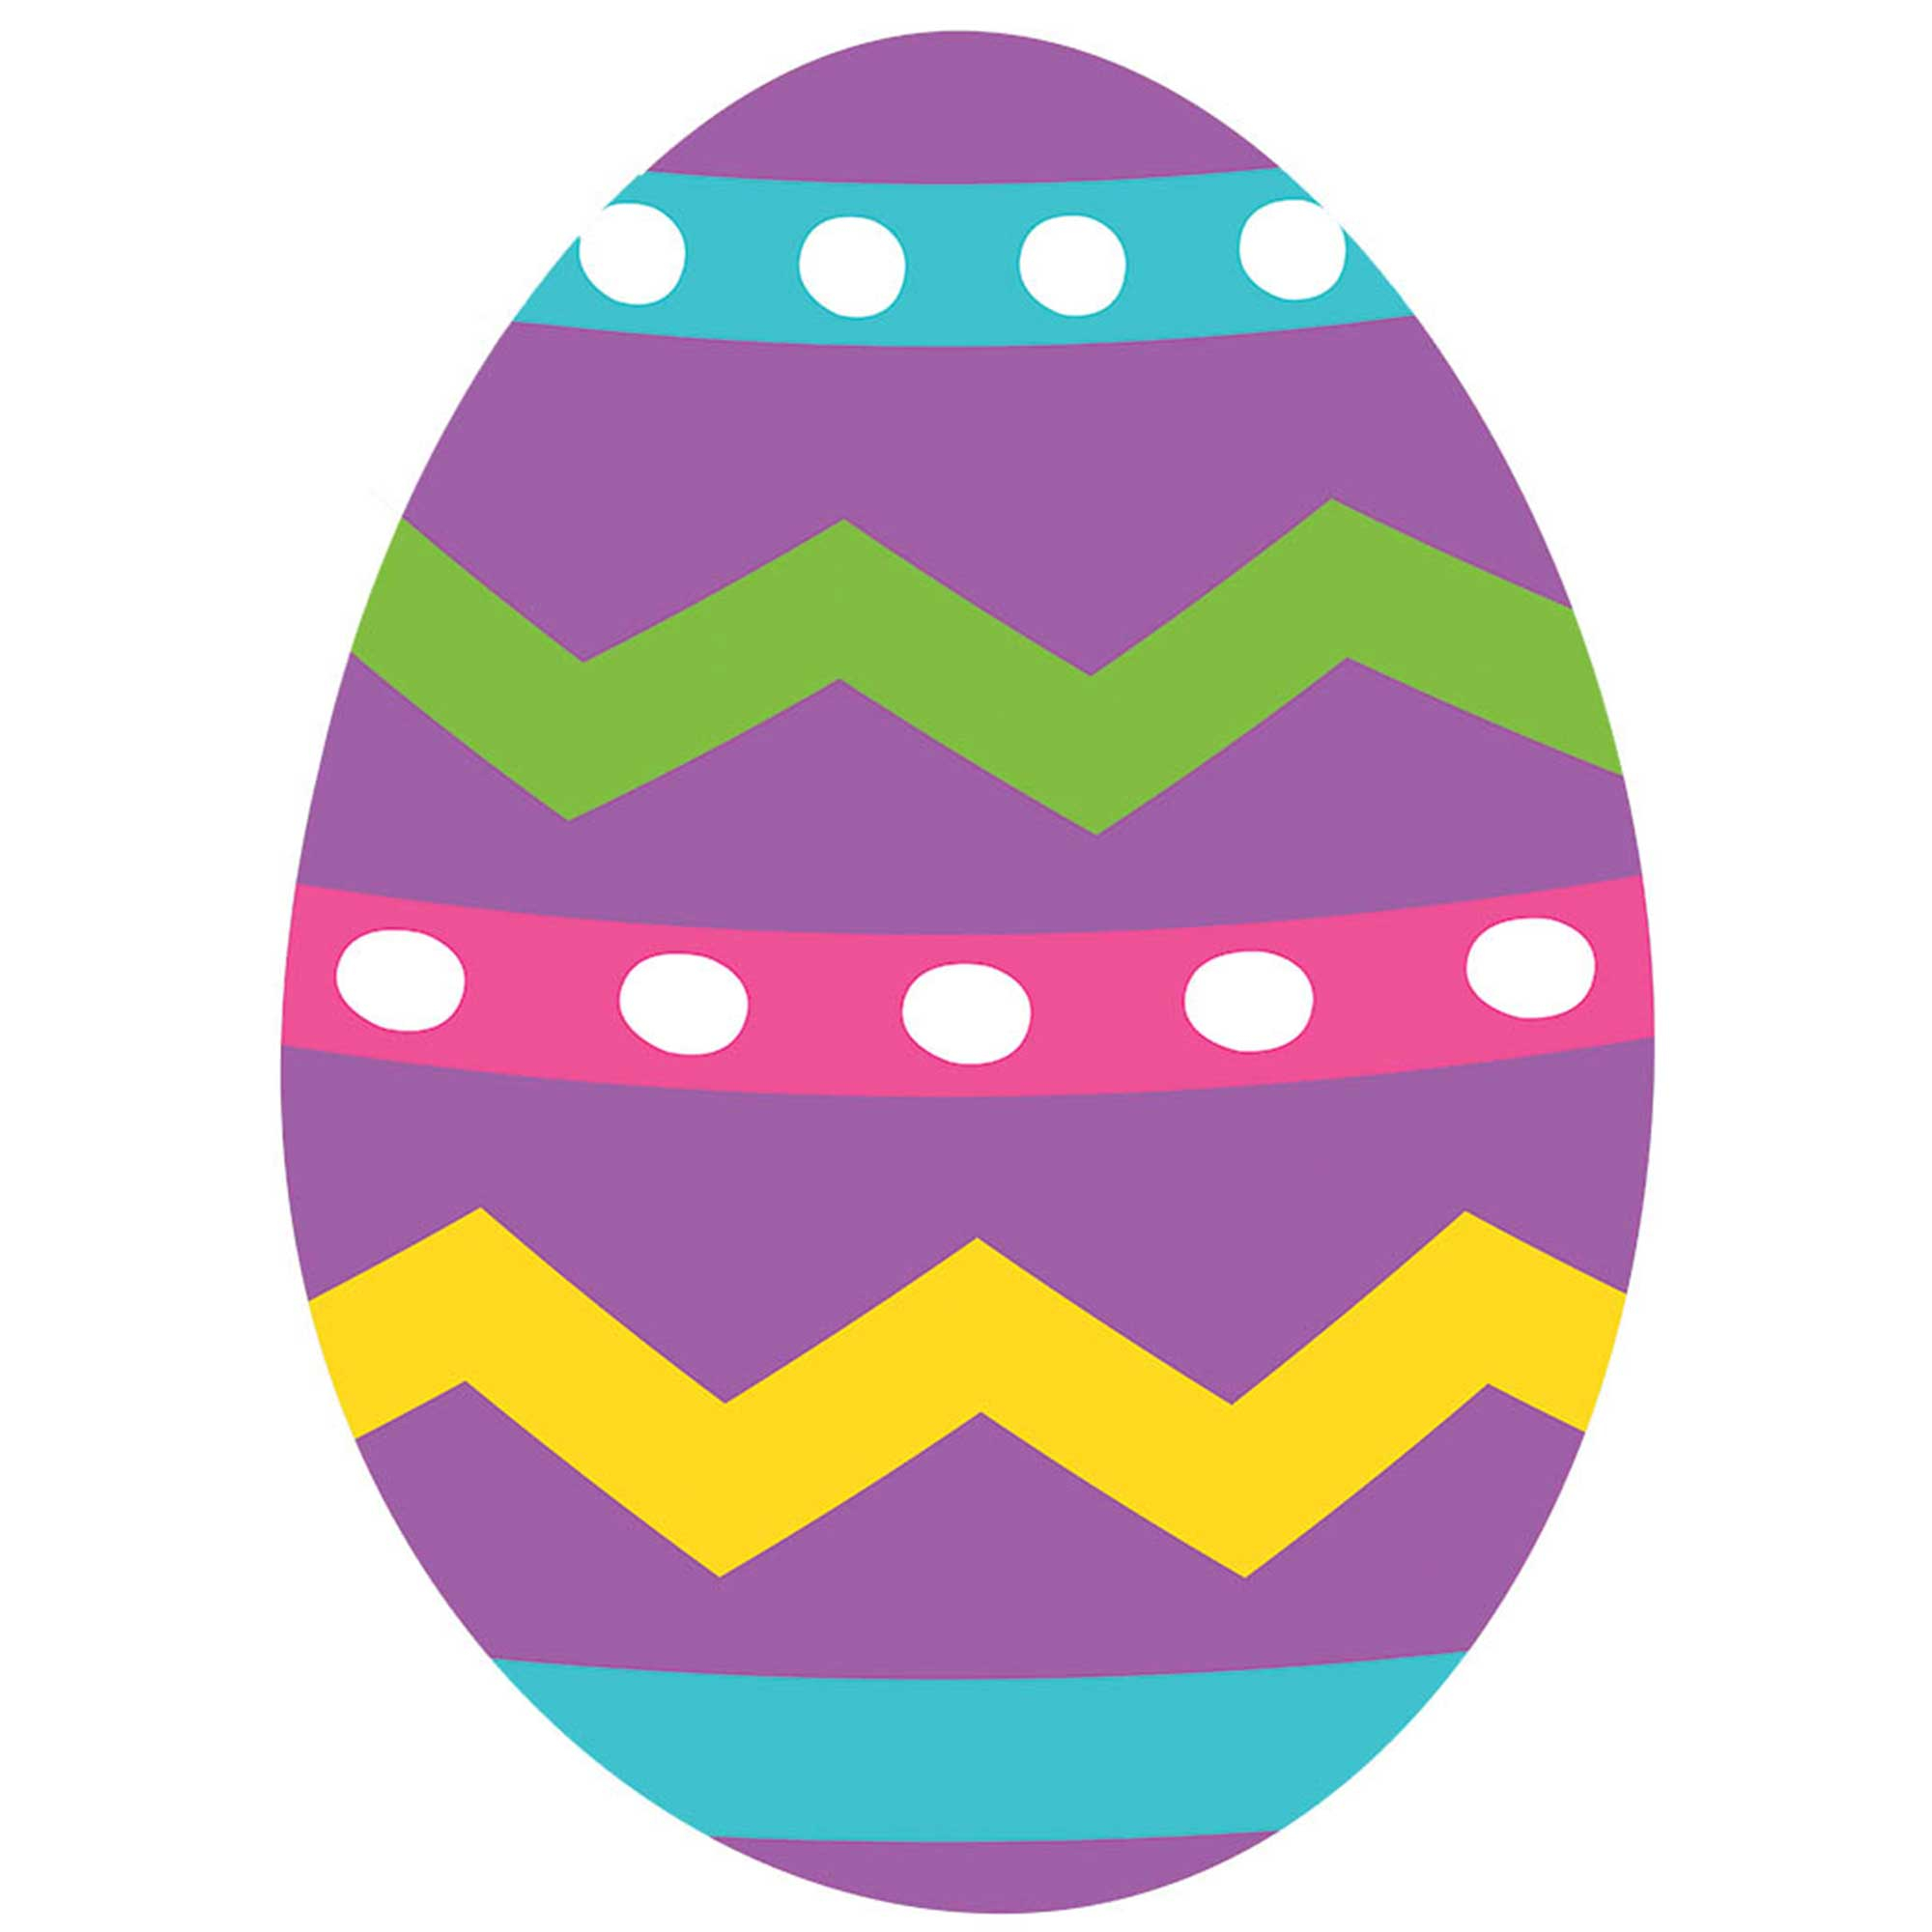 Easter Egg Cutout 2-Sided Design